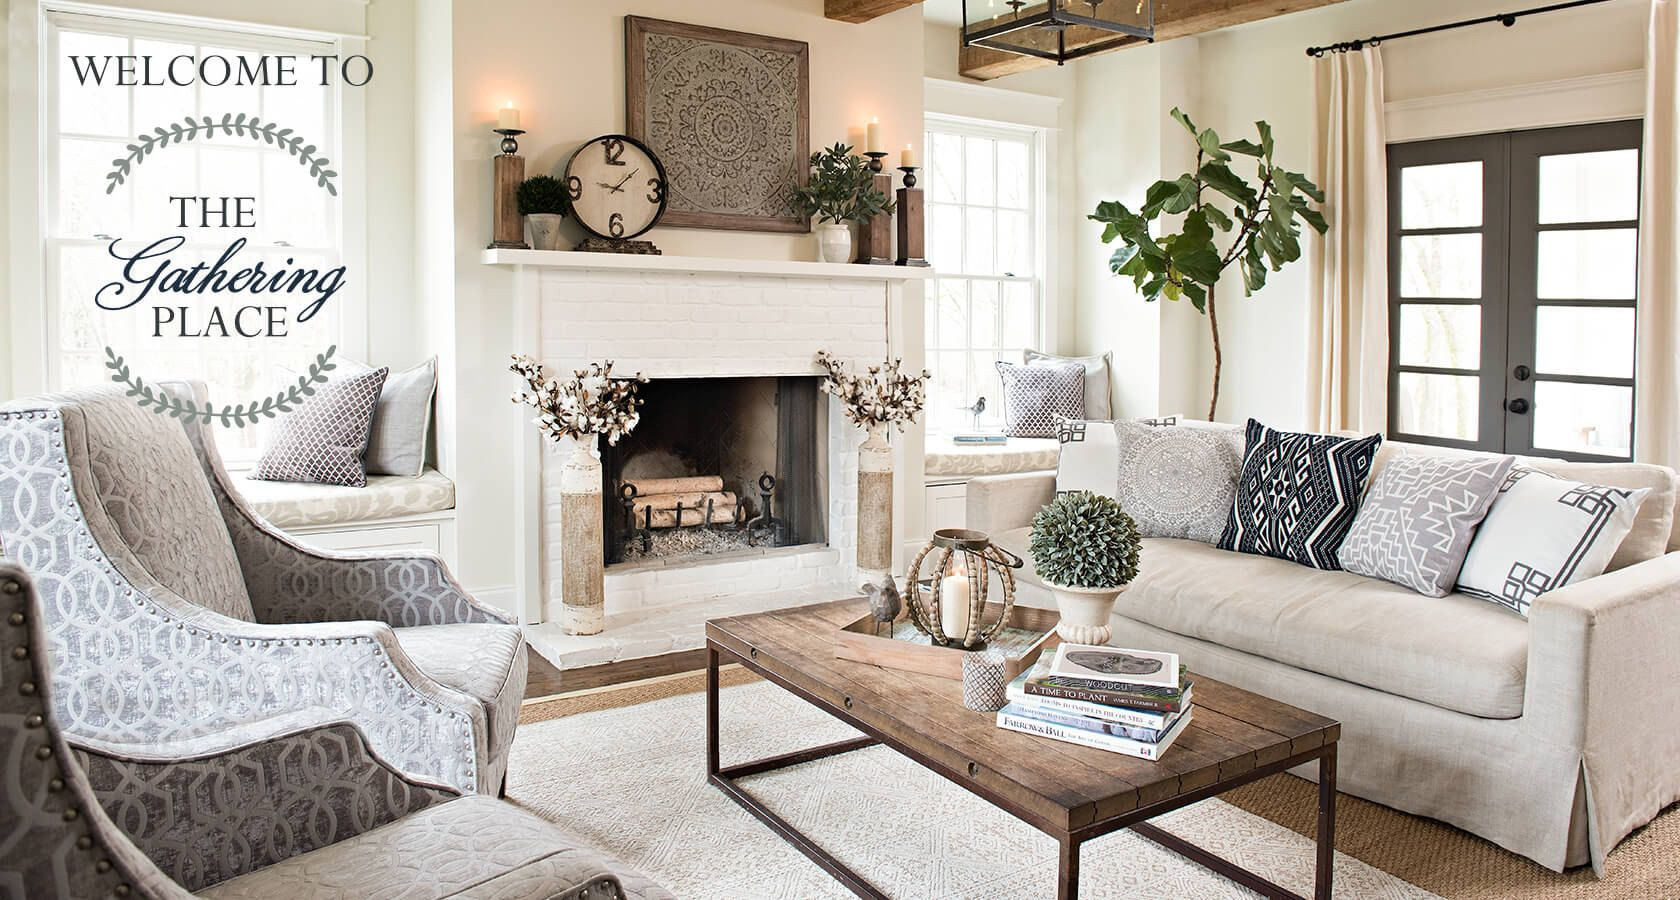 This is a Kirkland's photo, but I don't care -- this is a ... on Kirkland's Decor Home Accents id=60123